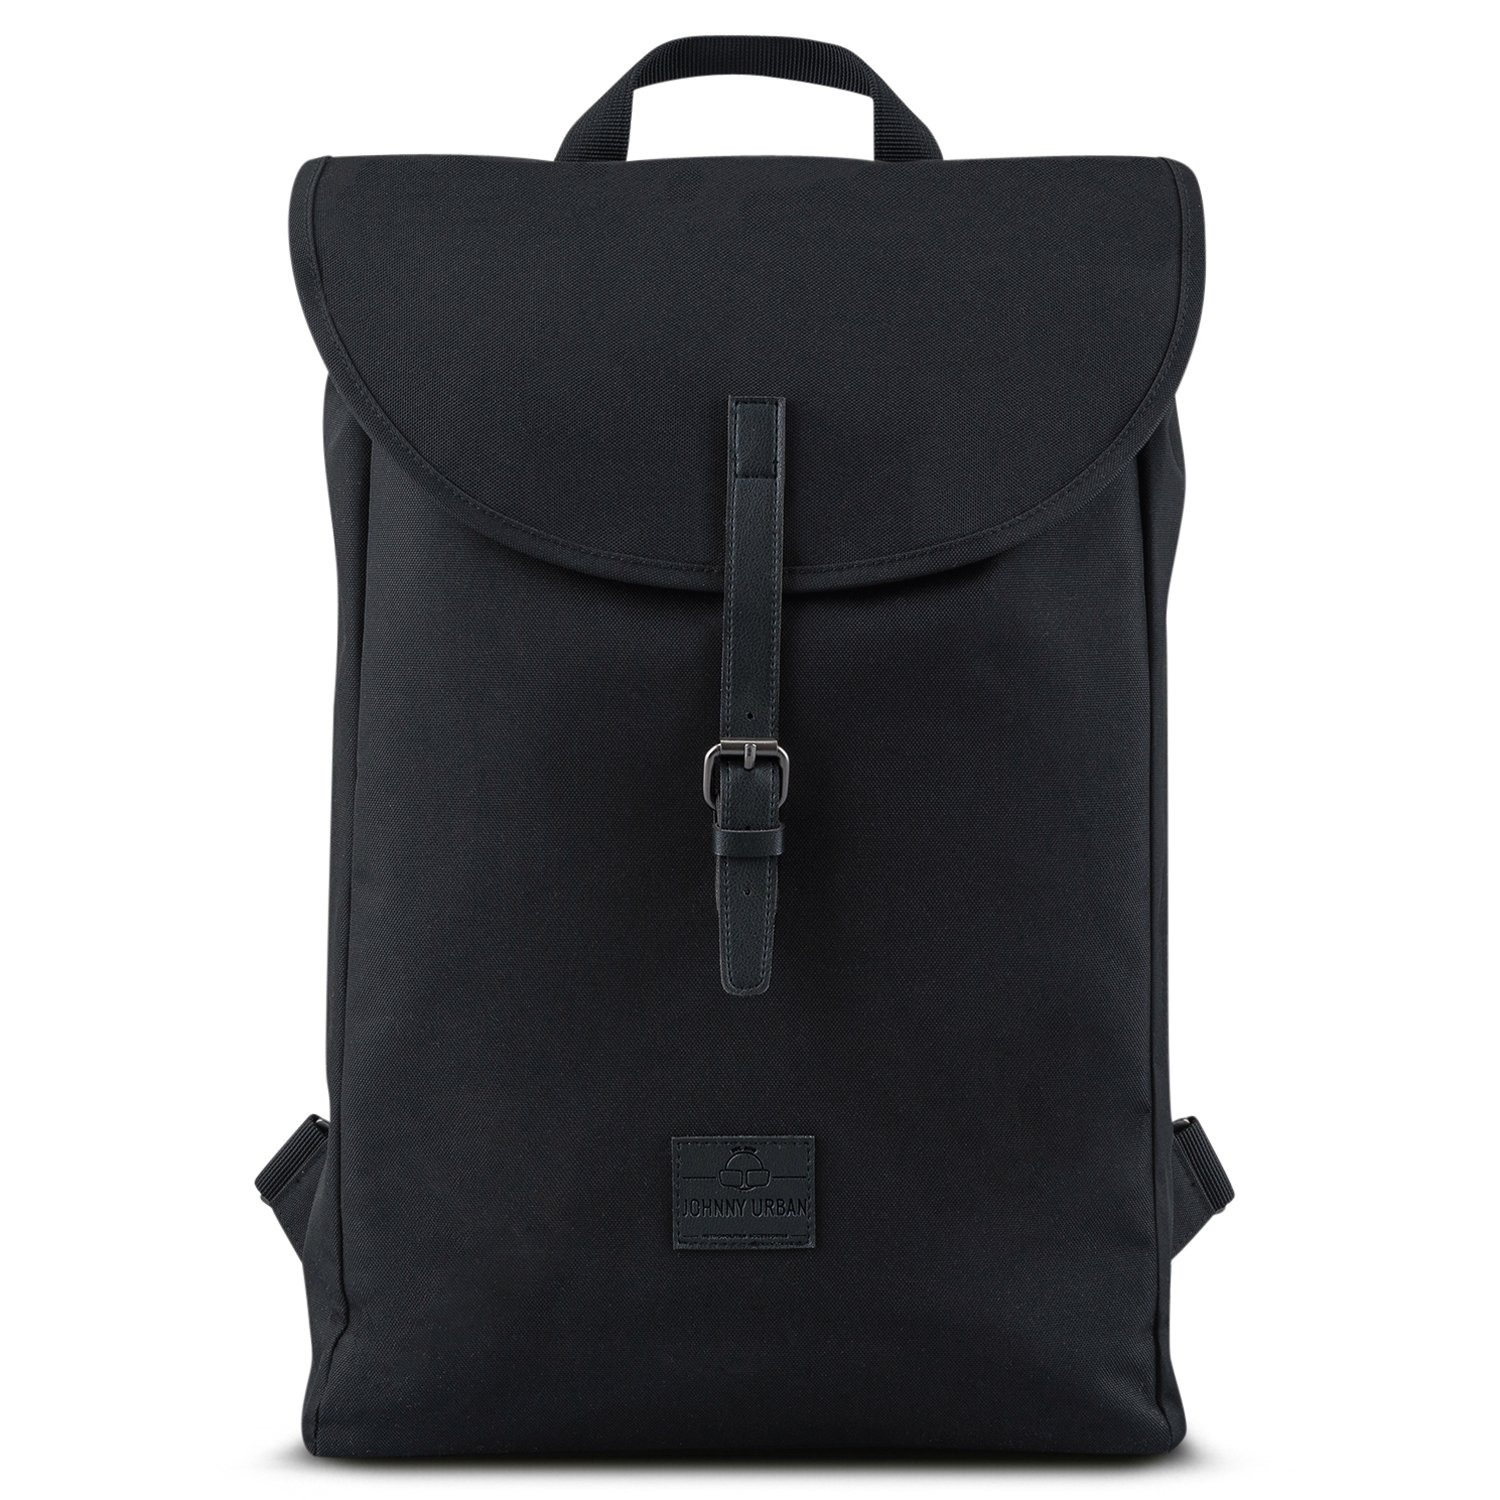 "good Backpack Men & Women Black - JOHNNY URBAN ""Liam"" from Recycled PET Bottles - Durable Daypack - 13 Litre Unisex Rucksack day-to-day Bag - Water-repellant with Laptop Pocket"